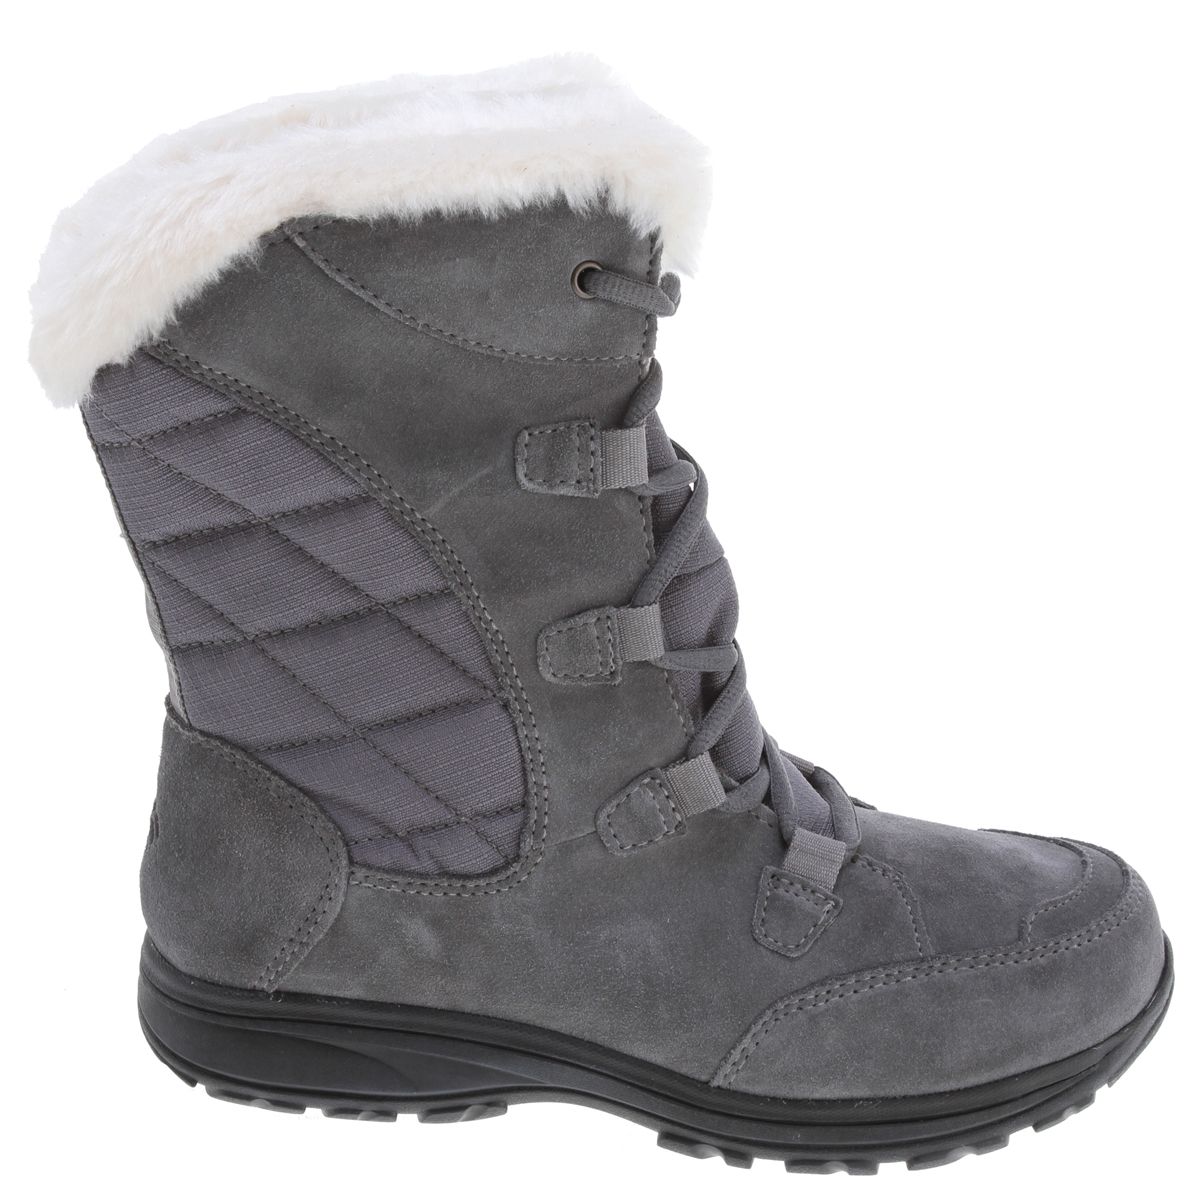 A value packed waterproof winter boot.Key Features of the Columbia Ice Maiden Lace Boots: Upper: Waterproof leather and textile. Faux fur collar for add warmth and soft fleece lining Insulation: 200gr insulation. Rated -25F/-32C Footbed: EVA for comfort and support Shank: Molded nylon shank provides torsional rigidity and support Midsole/Outsole: Non-marking Omni-Grip rubber compound with a winter specific lug tread pattern for maximum traction - $63.95